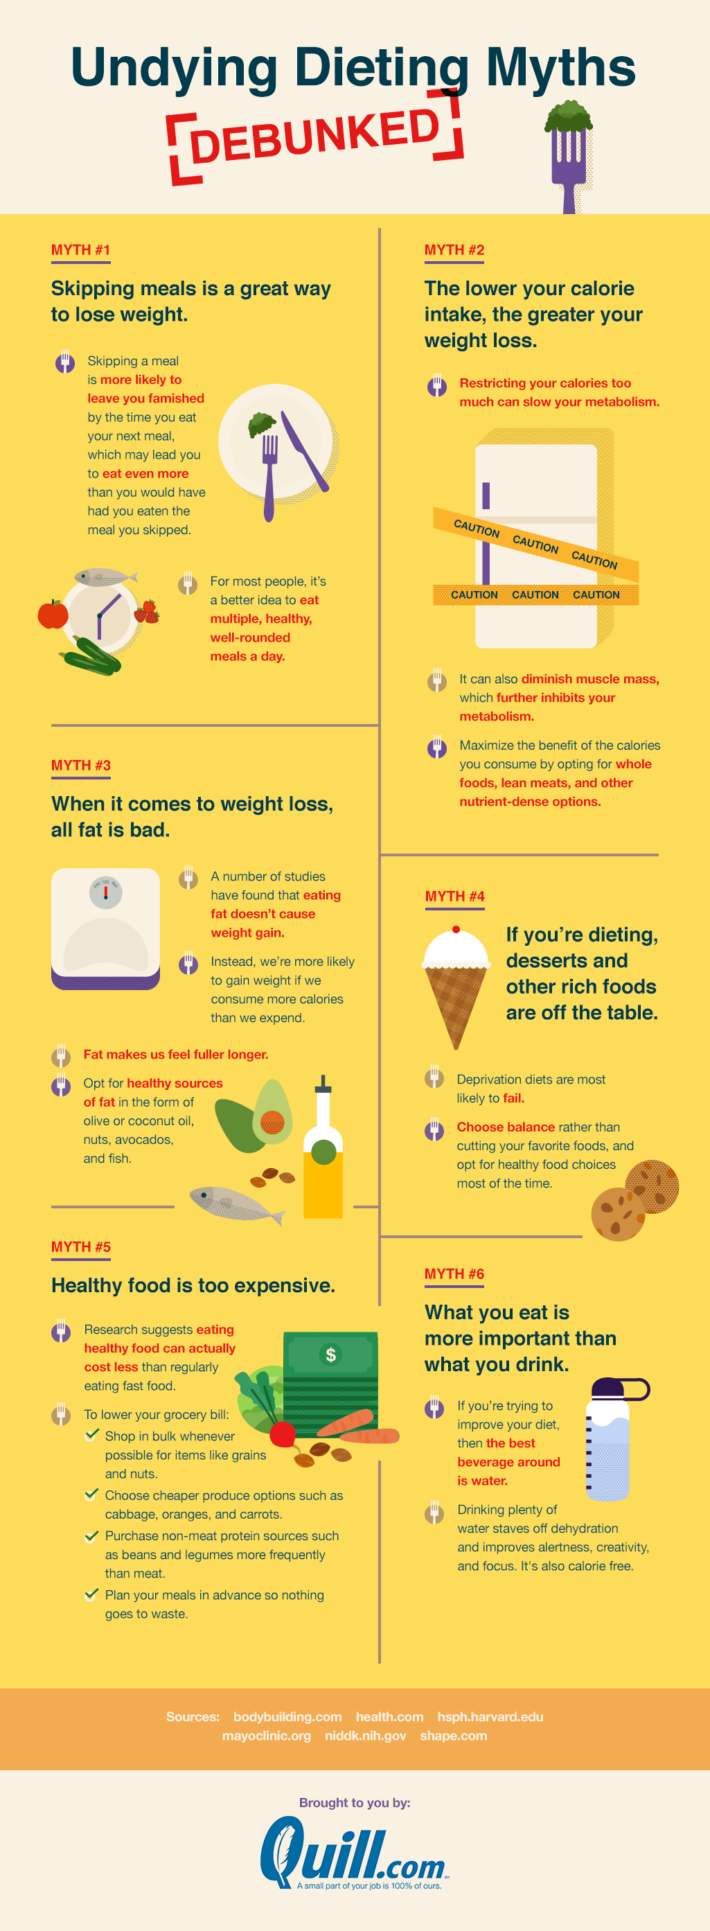 Consider-these-dieting-myths-and-misconceptions-this-January-710x1931